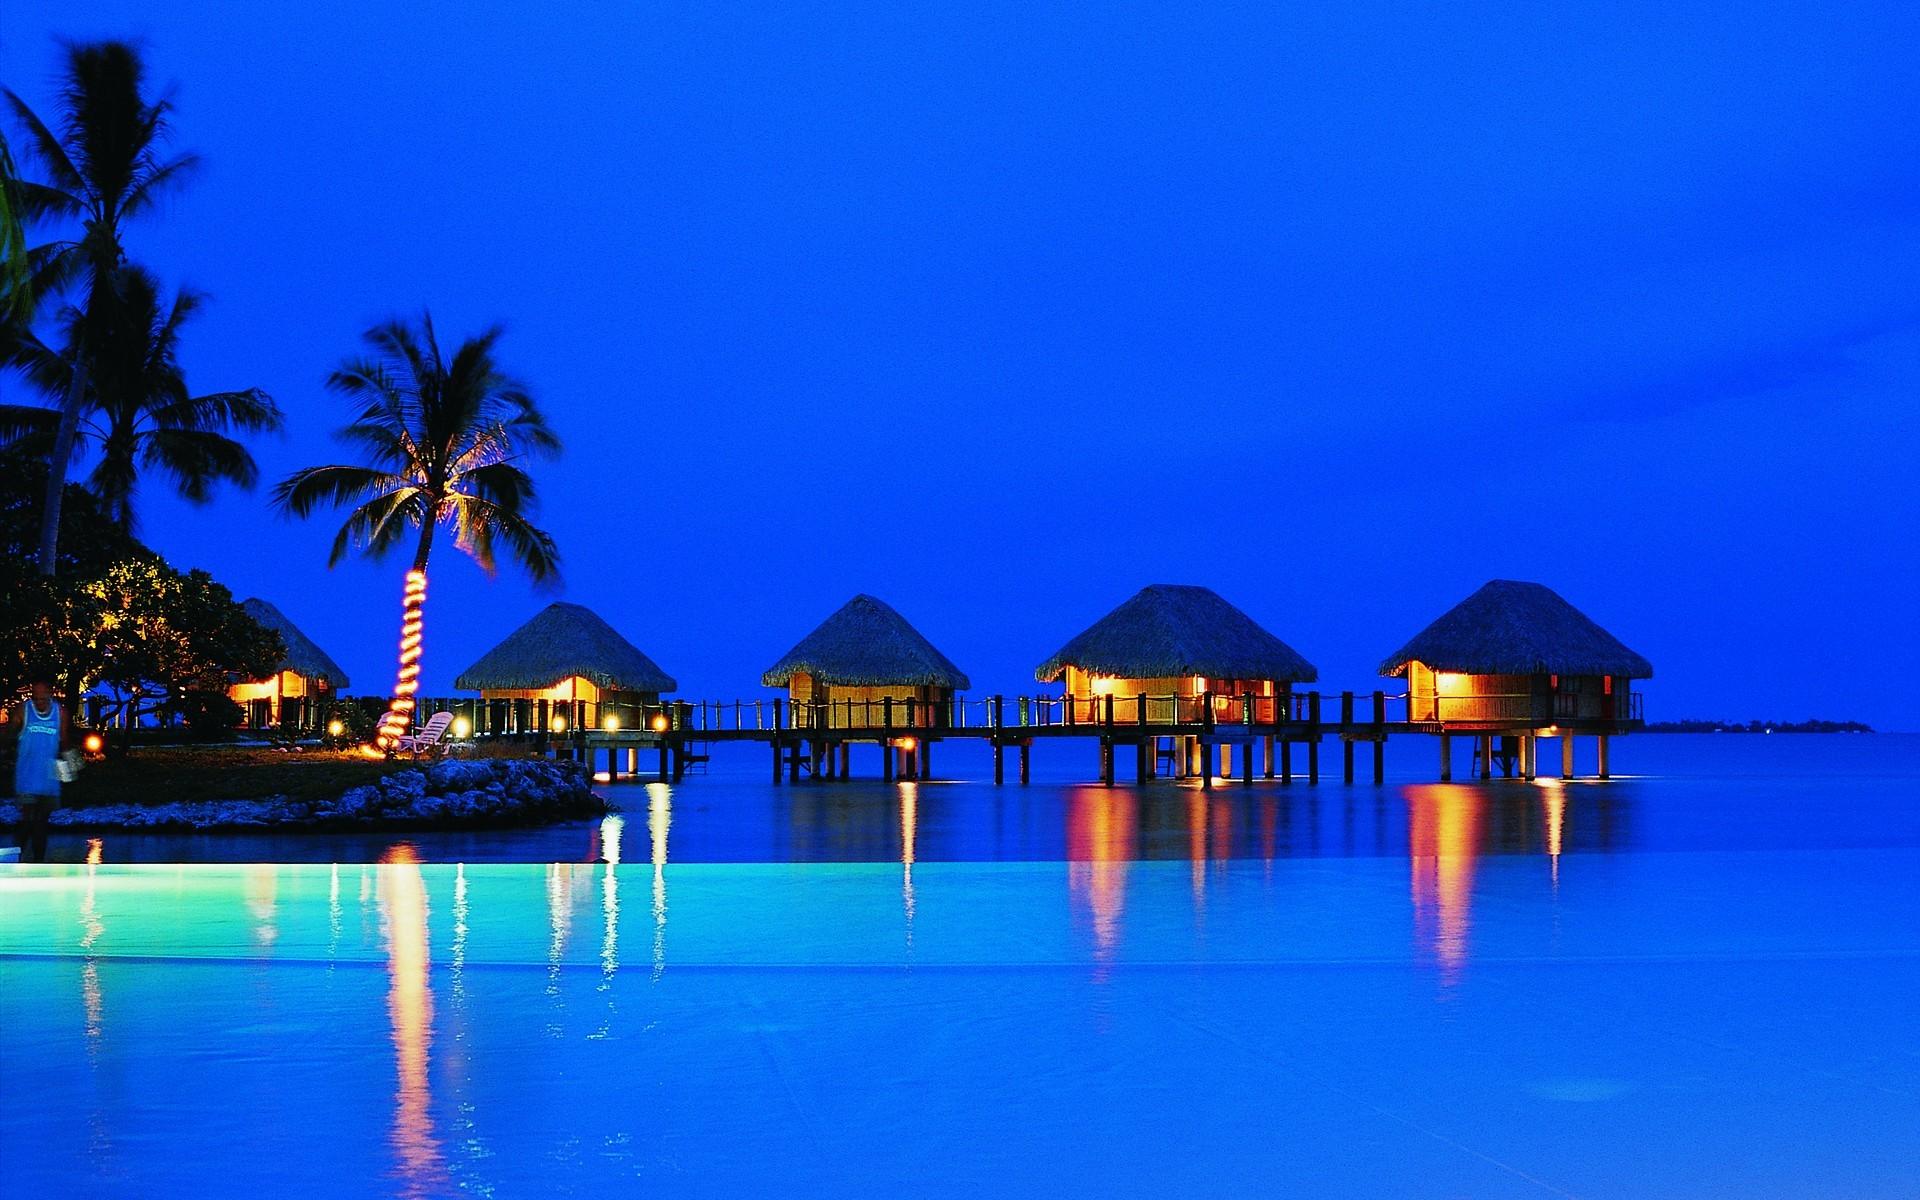 Beach Resort Wallpaper 21  1920x1200